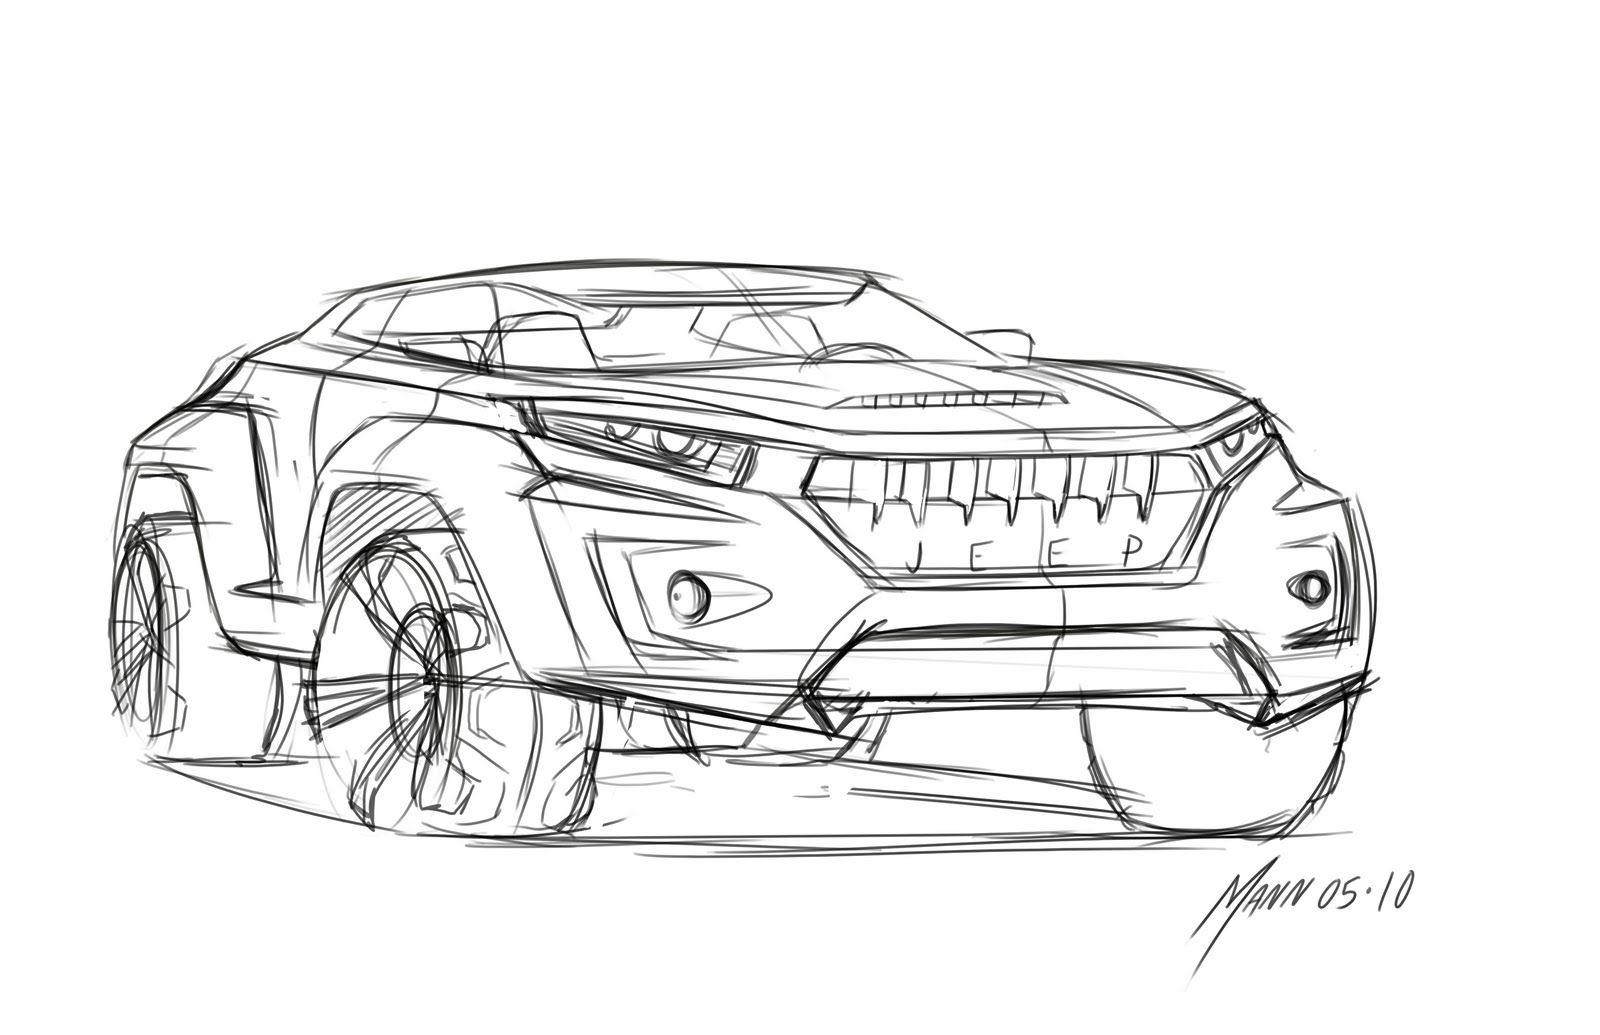 Jeep Concept Vehicle Drawing From We Draw Cars May